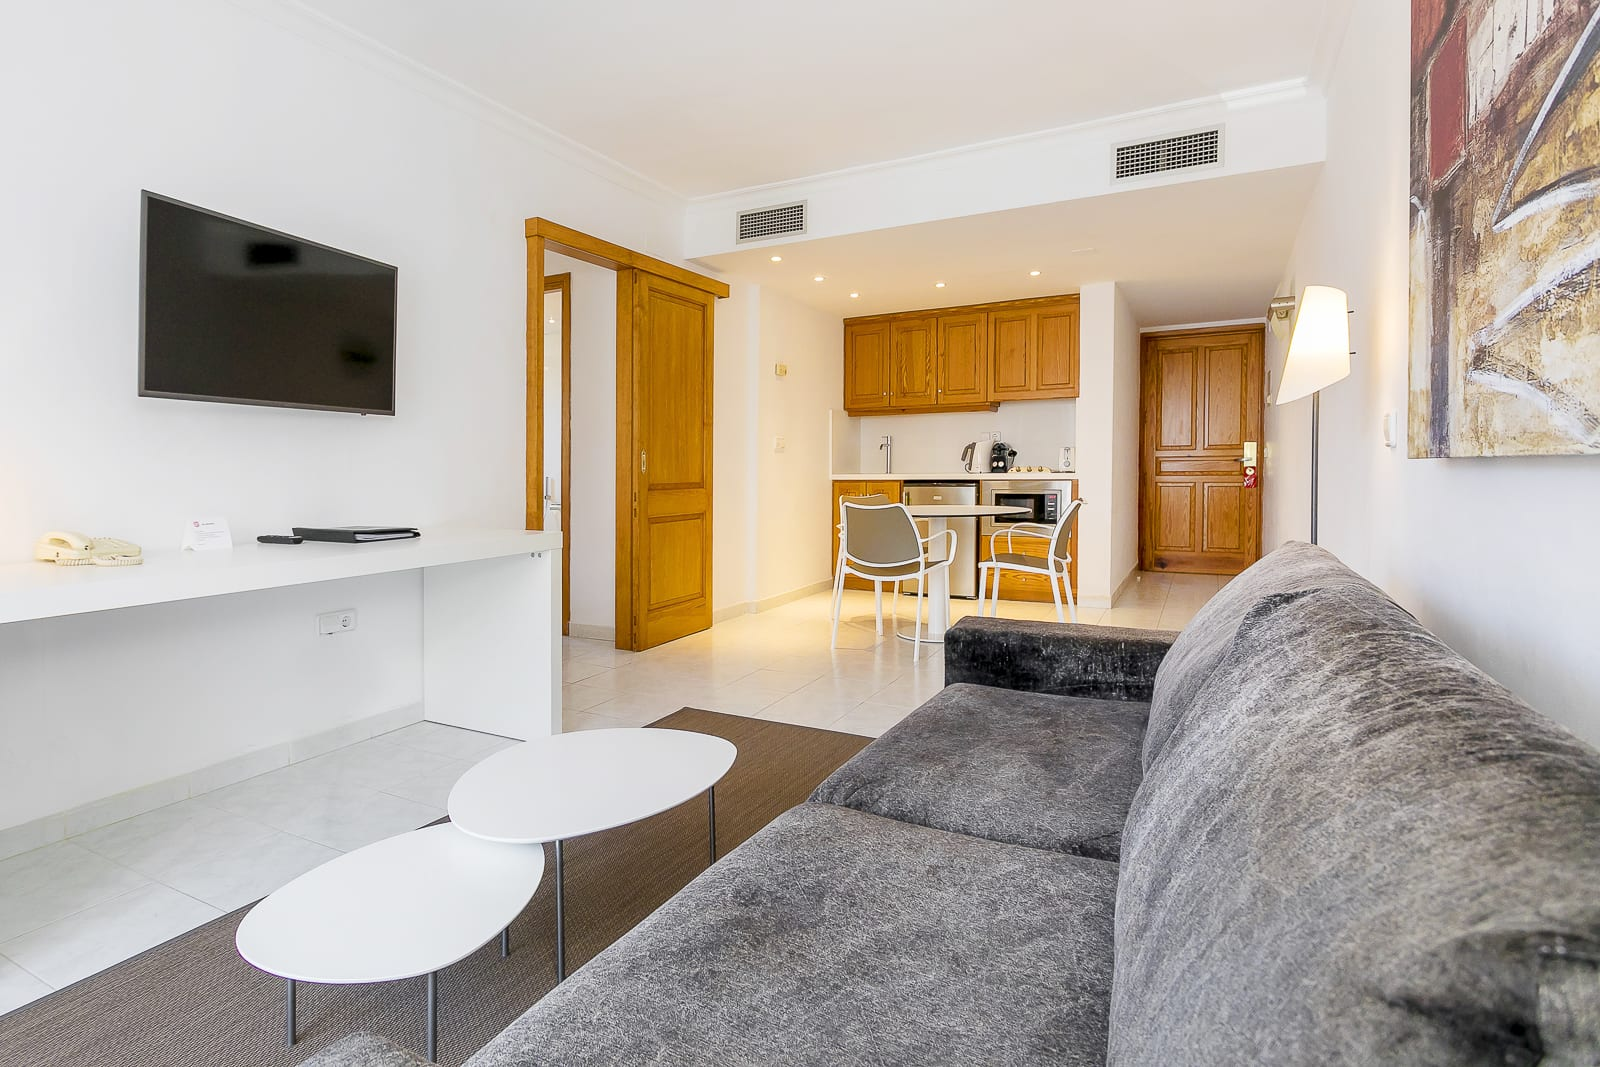 [SUITE 2 GUESTS] Bright holiday apartment with roof terrace pool